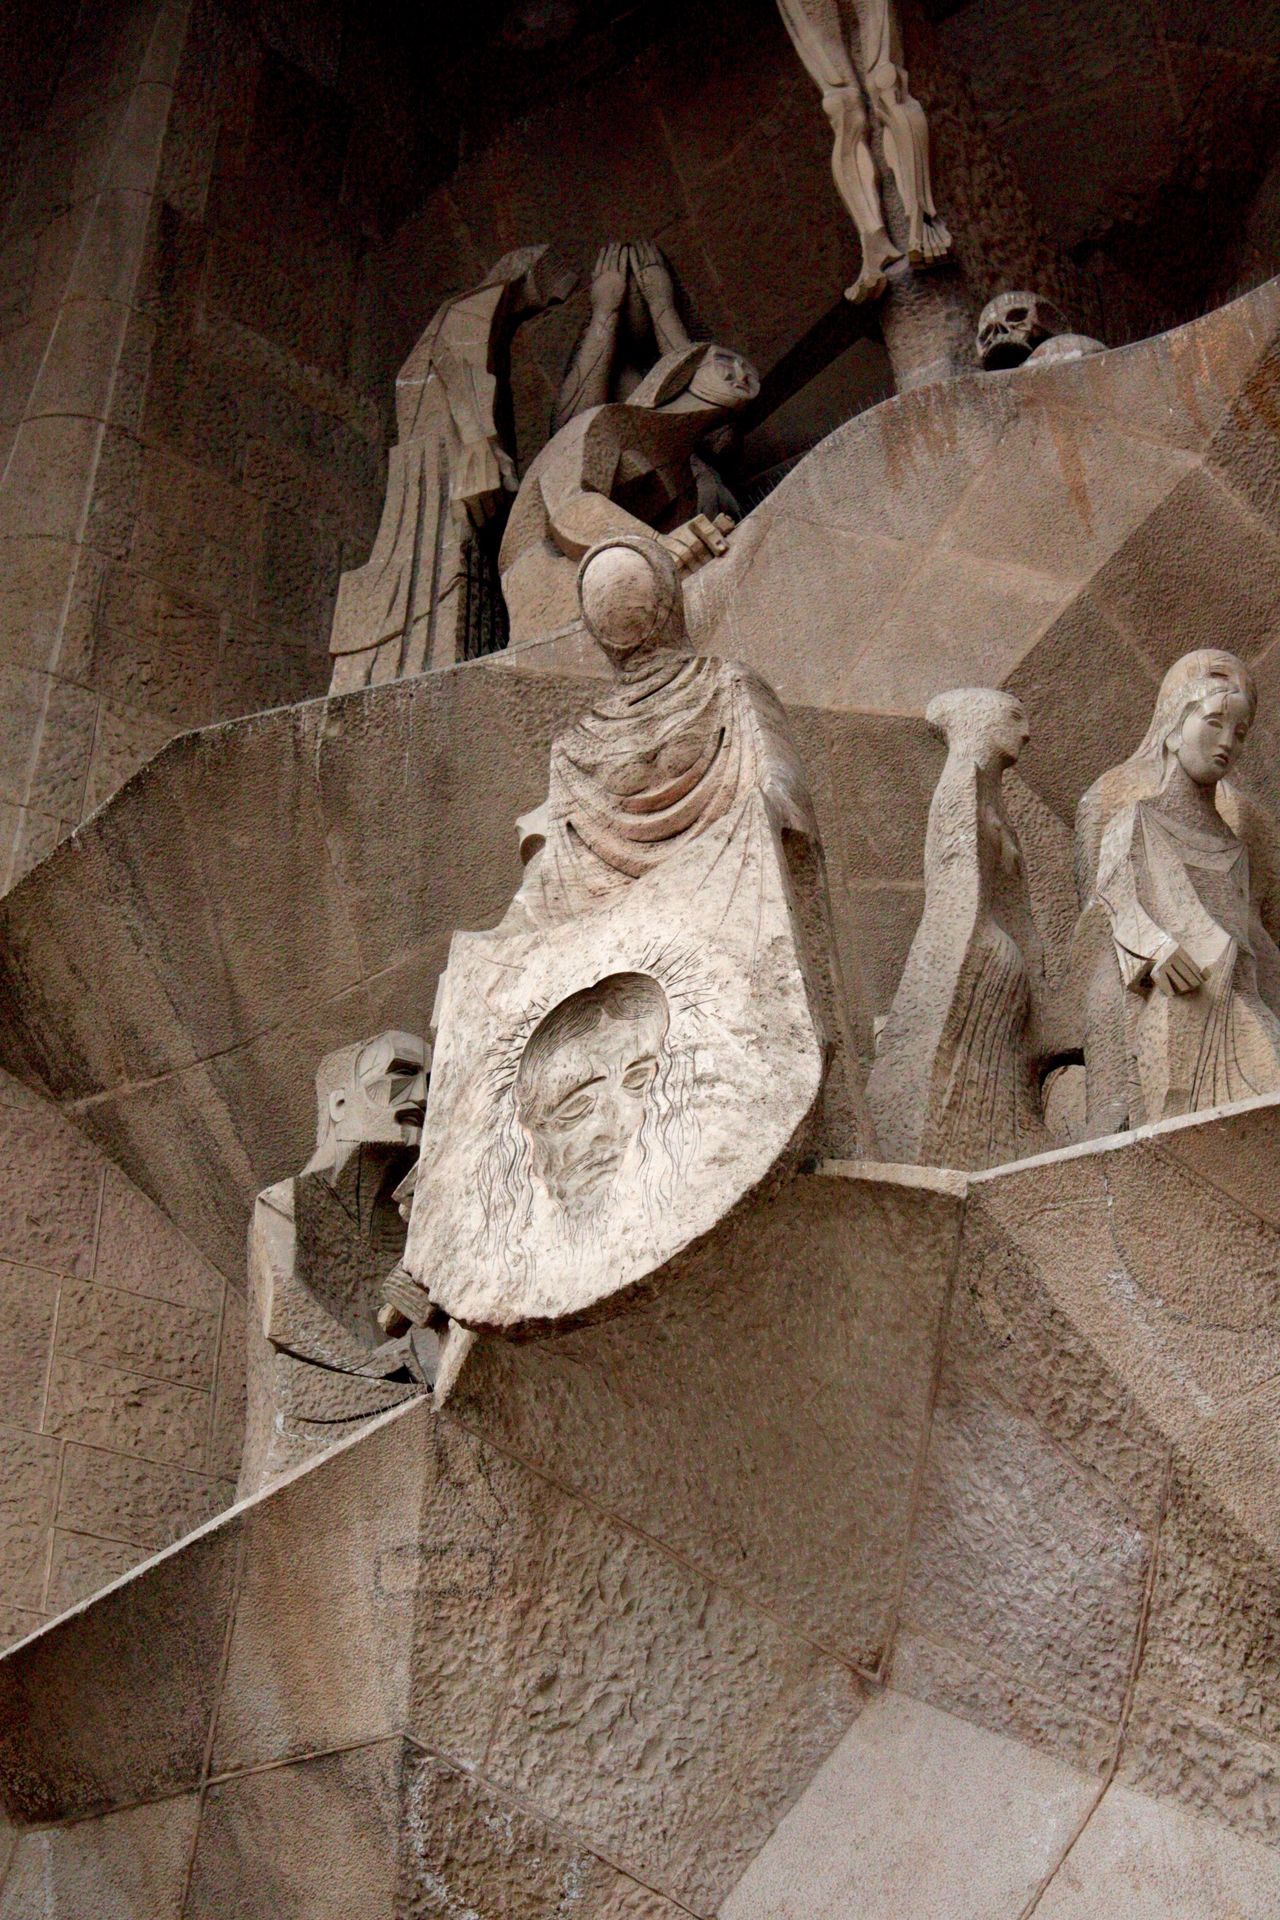 Barcelona Church Church Architecture Churchporn Day No People Sagrada Familia Sagradafamilia Stone Figure Travel Travel Destination Travel Destinations Without Face